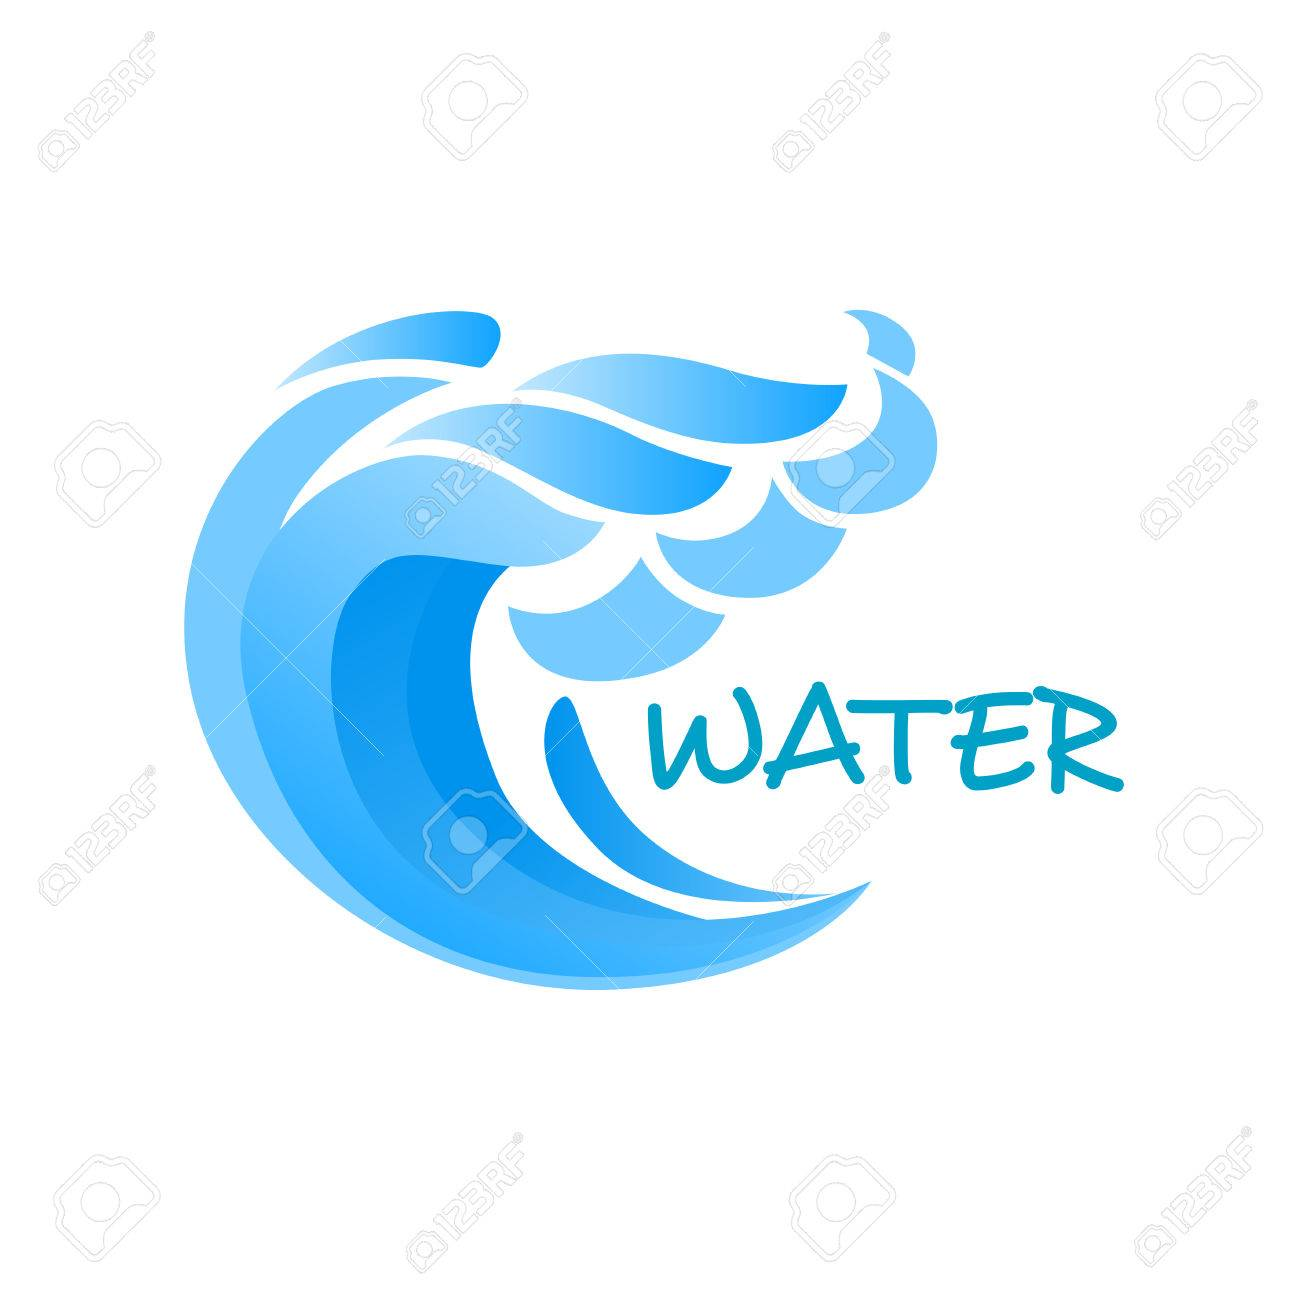 Billowing blue wave or ocean surf with splashes emblem or logo billowing blue wave or ocean surf with splashes emblem or logo template isolated on white background biocorpaavc Gallery